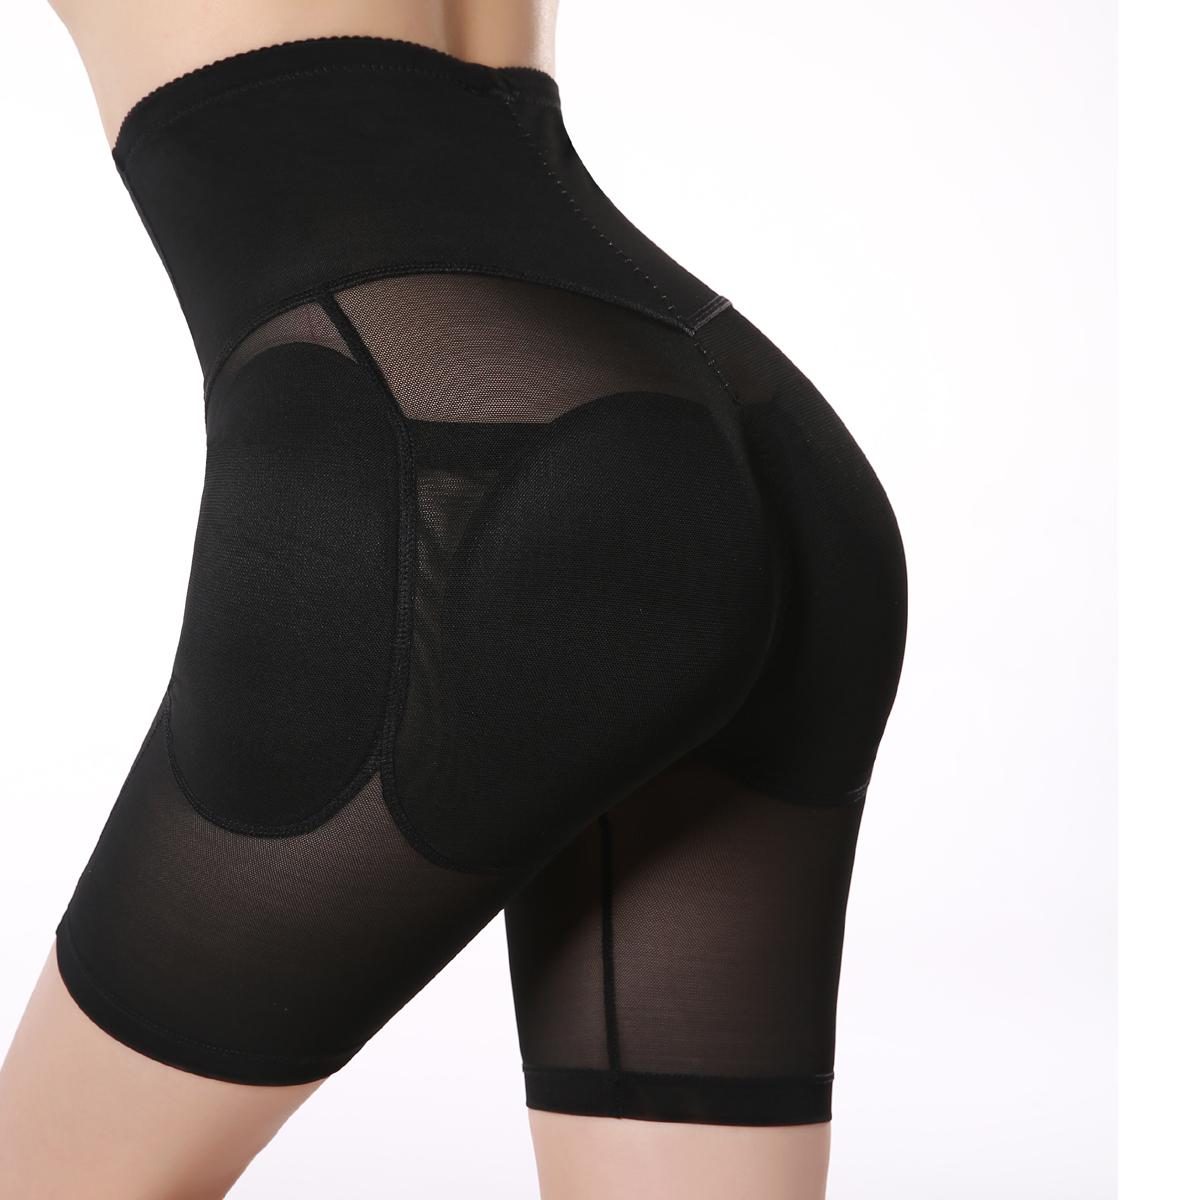 a3727d5150 Women Sexy Control Panties High Waist Underwear Shaper Breathable Black Plus  Size Body Shapers L XL XXL 3XL UK 2019 From Nancypeng422